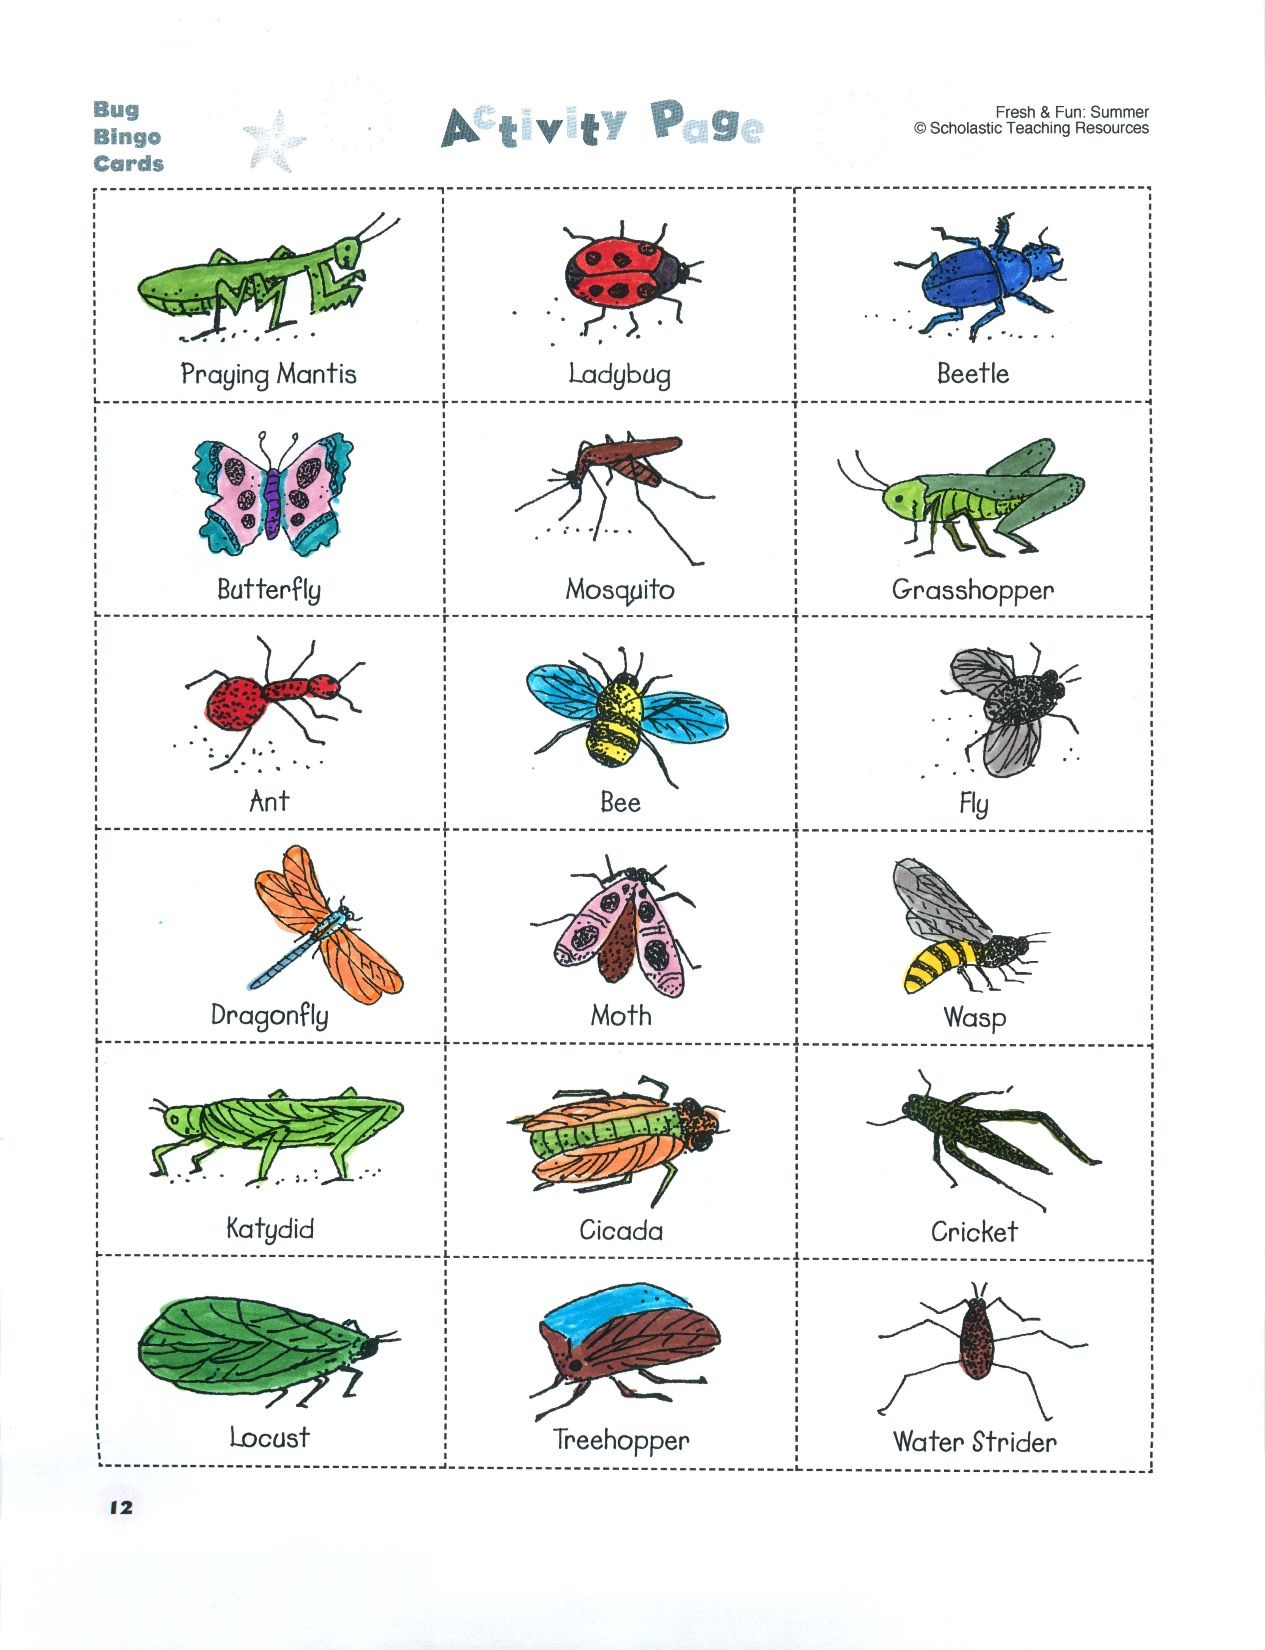 Build Science Vocabulary With A Game Of Bug Bingo